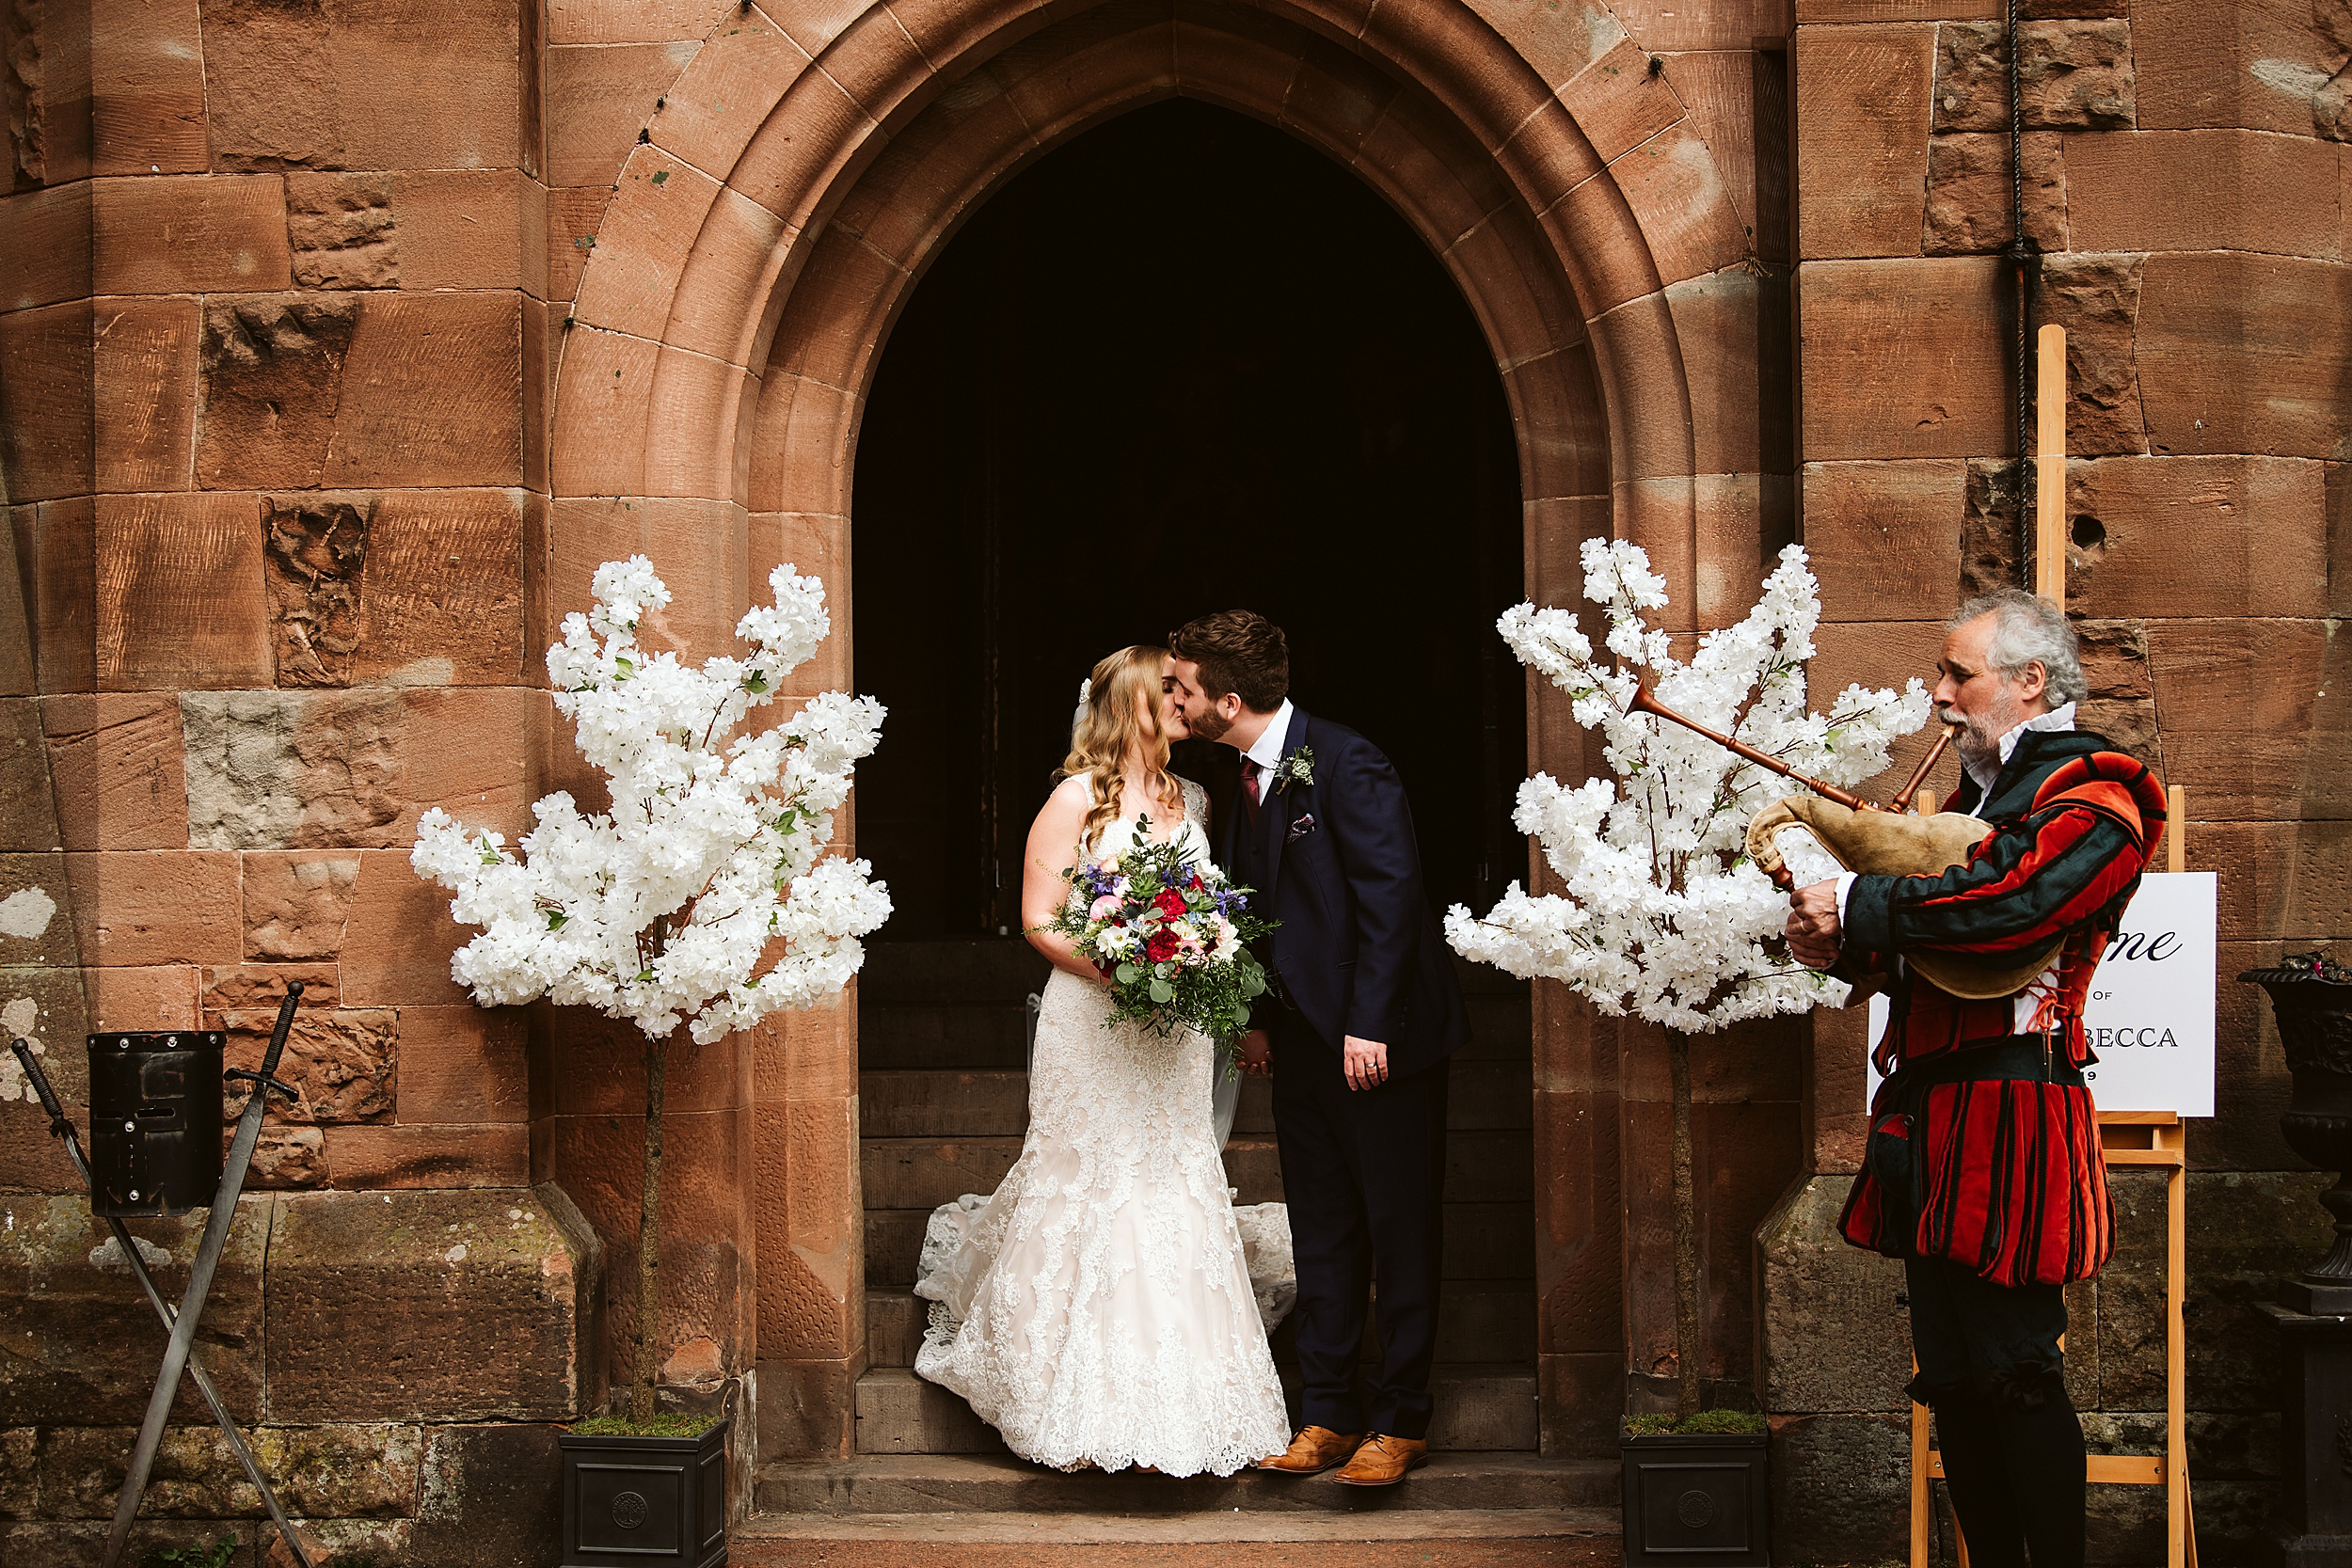 Peckforton_Castle_Cheshire_Toronto_Wedding_Photographer_UK_Destination_Wedding_0050.jpg